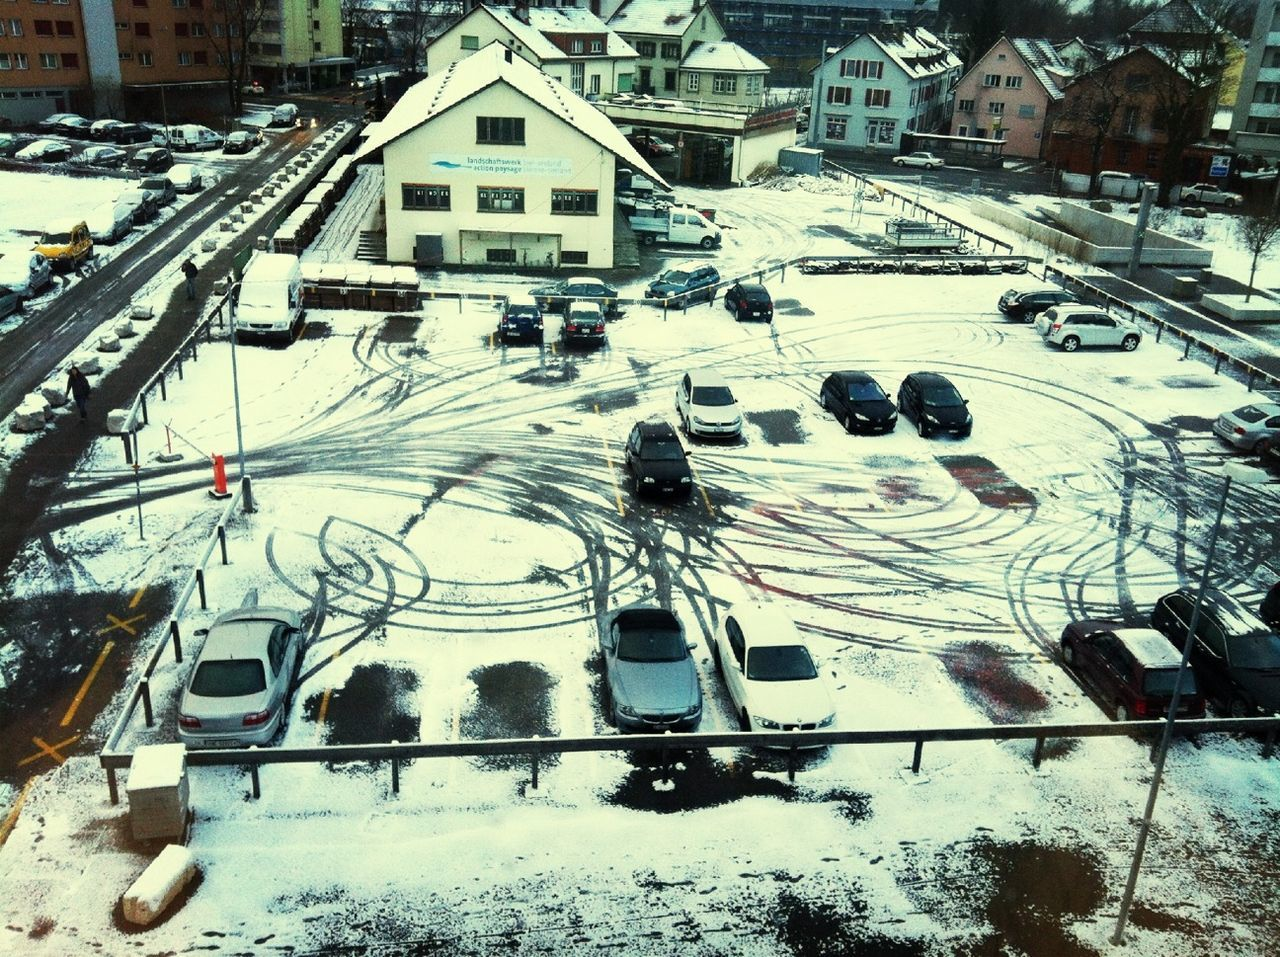 cold temperature, winter, snow, season, architecture, building exterior, built structure, transportation, mode of transport, high angle view, weather, house, covering, city, travel, car, residential building, residential structure, land vehicle, city life, travel destinations, nature, tourism, day, outdoors, no people, scenics, residential district, beauty in nature